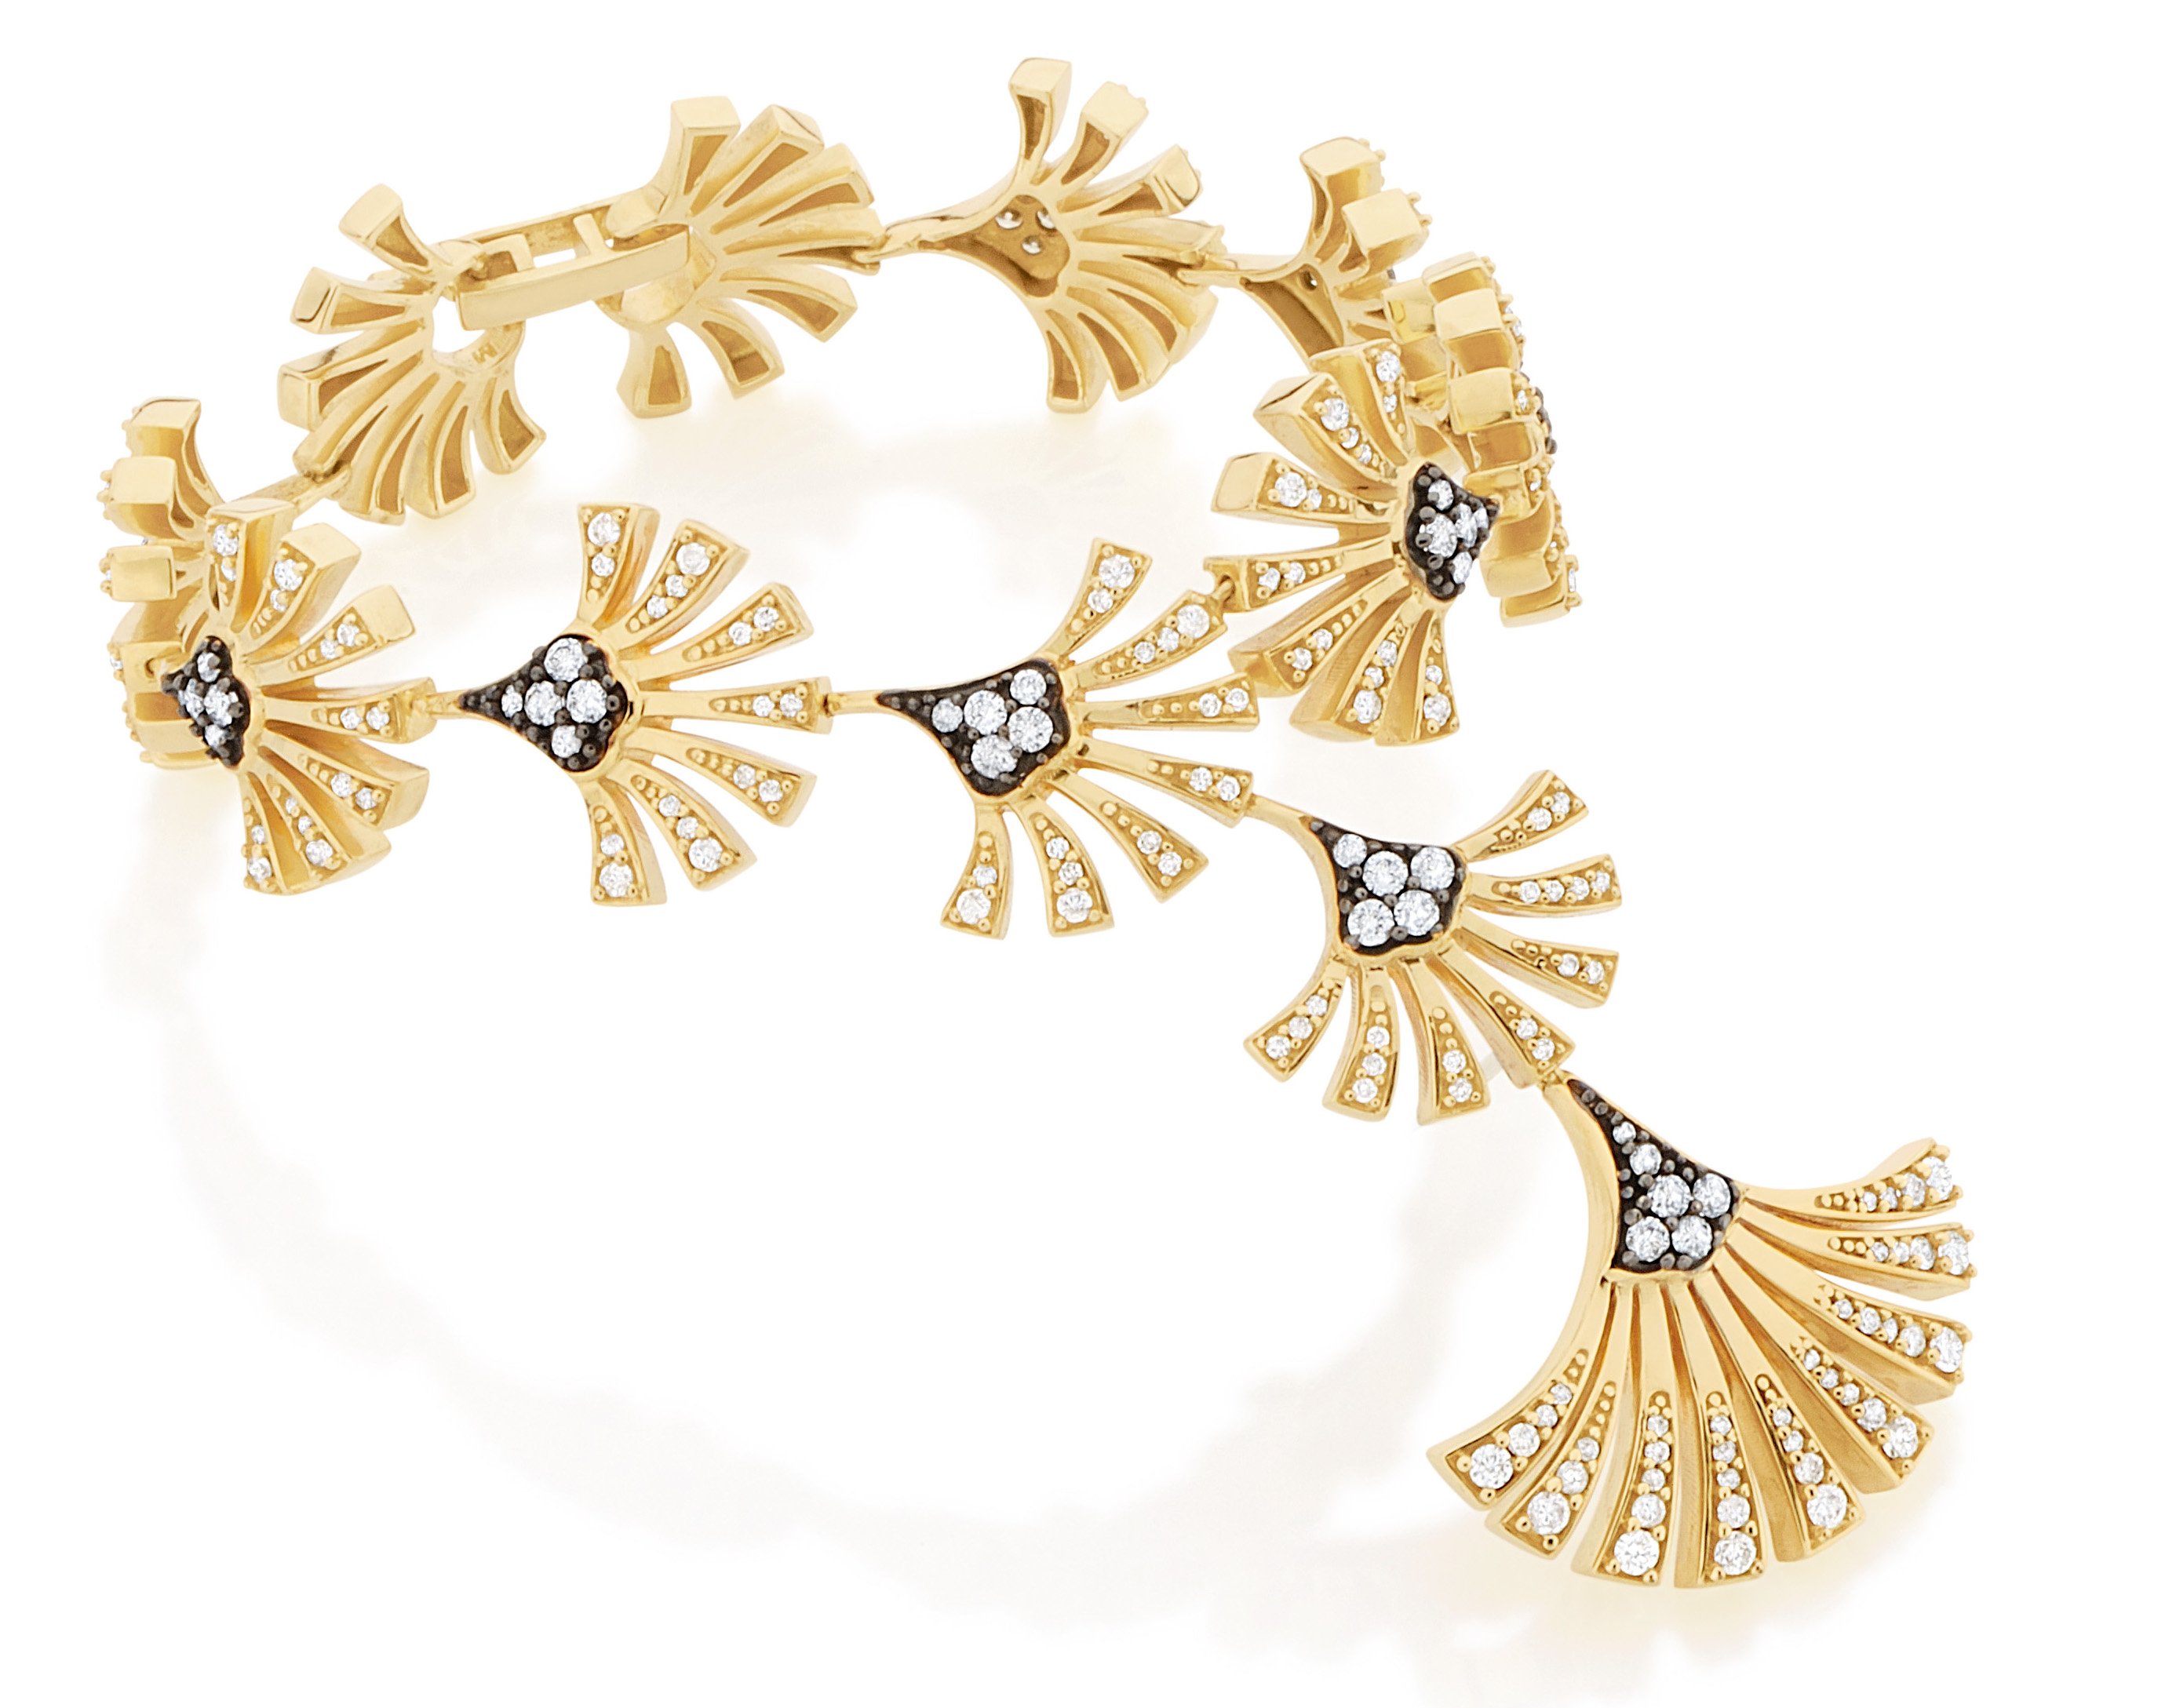 Most definitely a fan of this jewelry trend jck for Latest fashion jewelry trends 2012